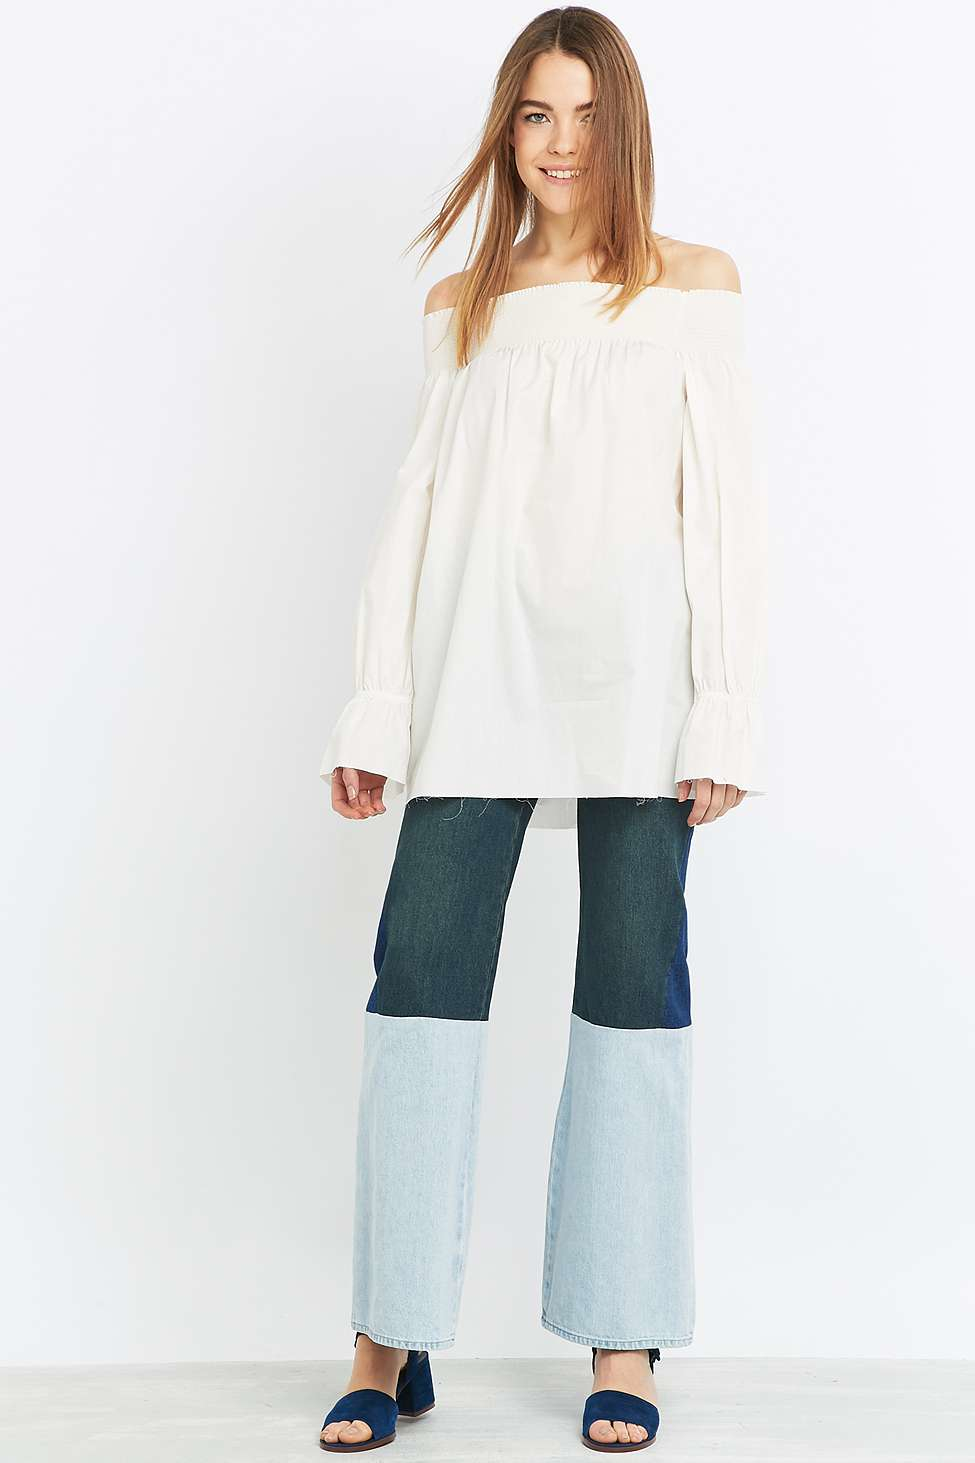 humanlike.co MM6 Three Tone Combo Blue Flared Jeans by Urban Outfitters